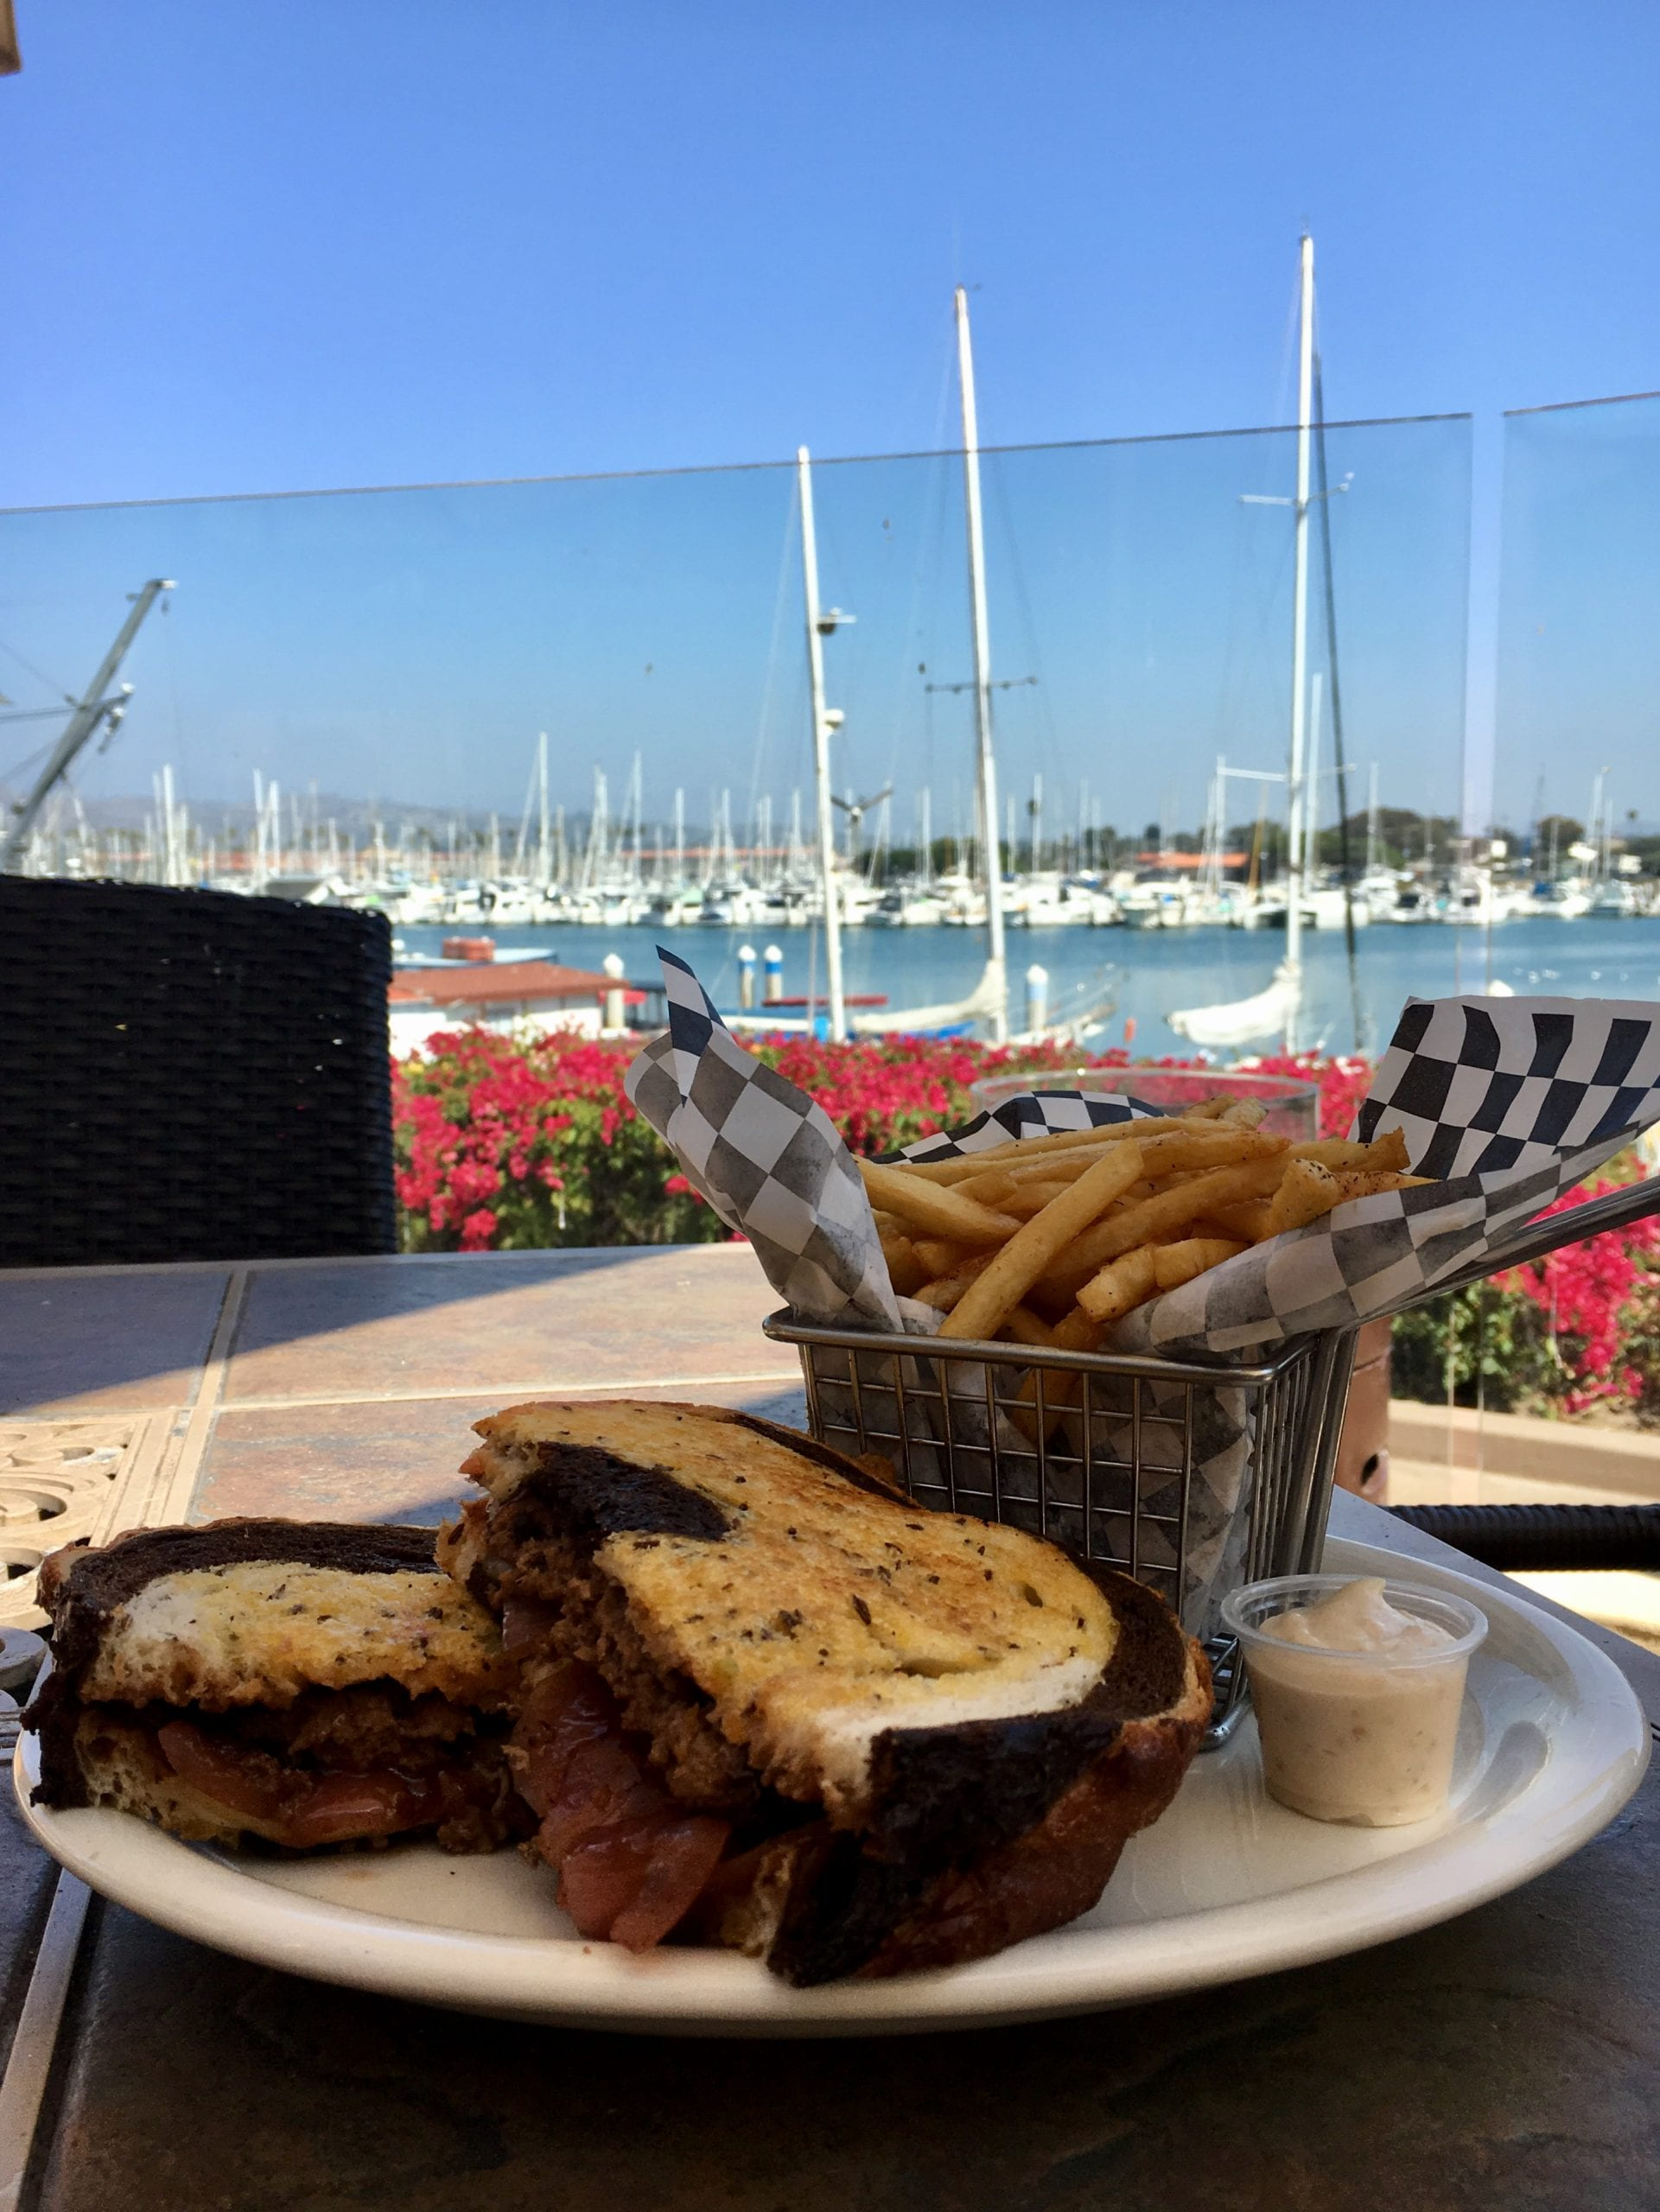 a beautifully made grilled cheese sandwich on rye bread stuffed with gooey goodness with crisp French fries in front of the gorgeous backdrop of Ventura Harbor Village